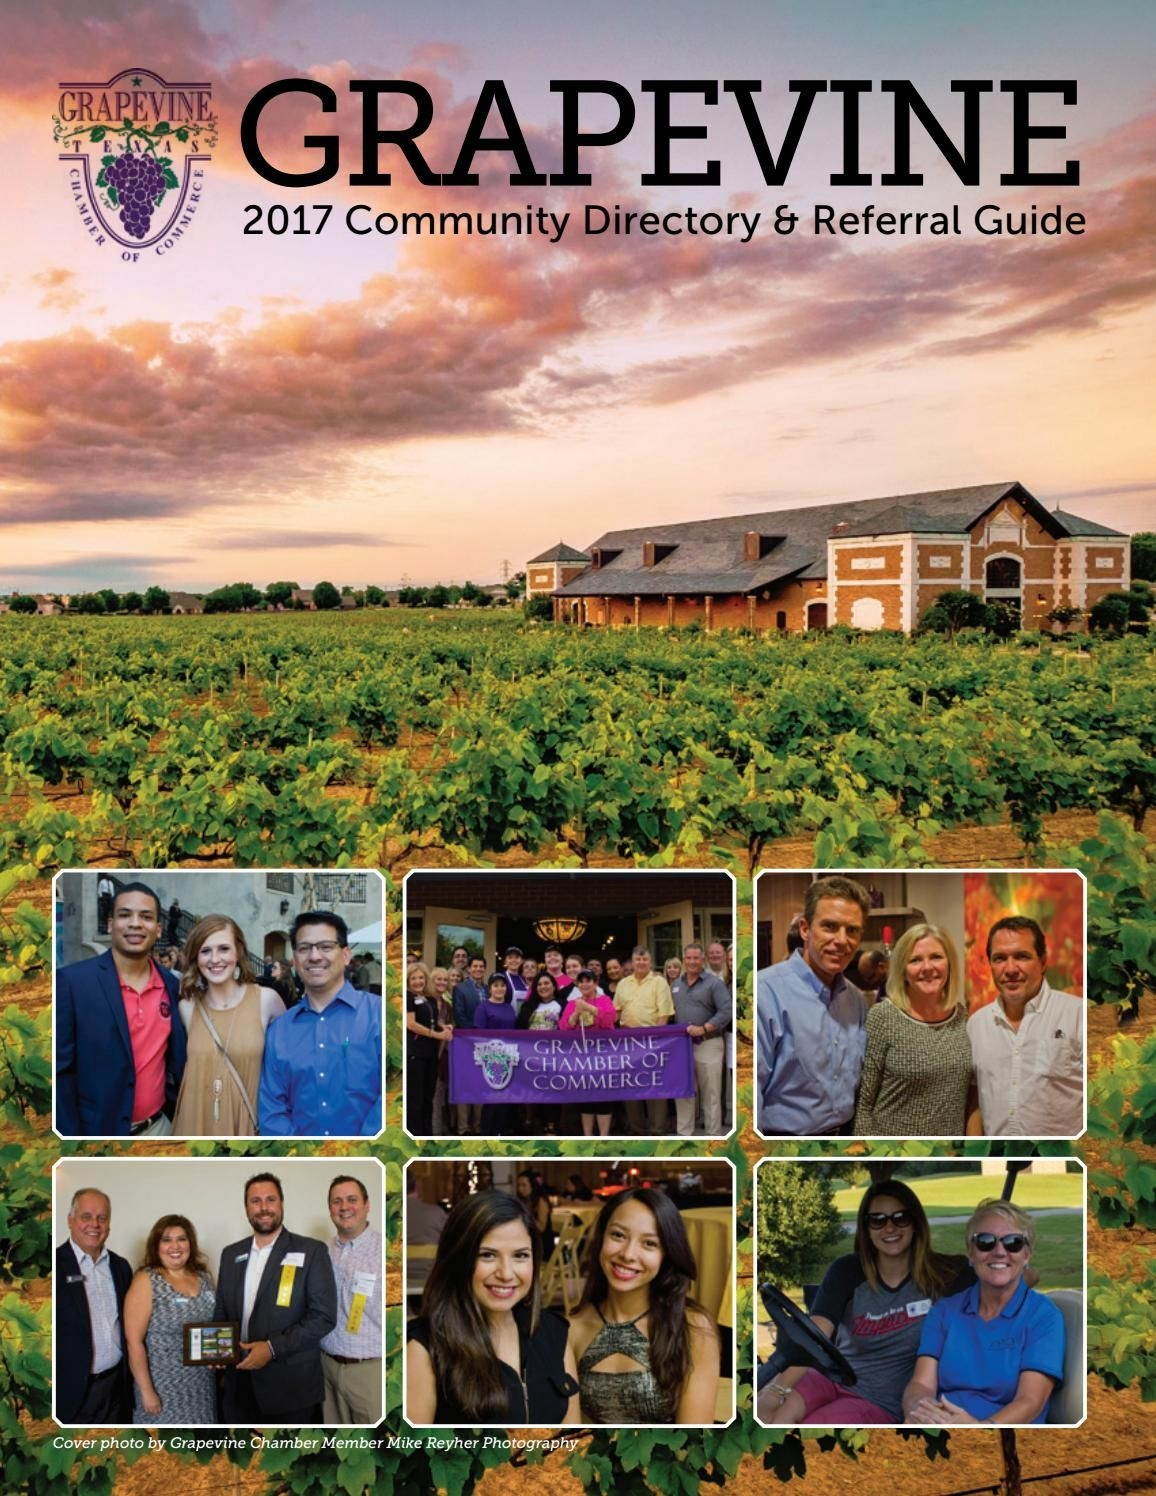 Grapevine 2017 Community Directory & Referral Guide By